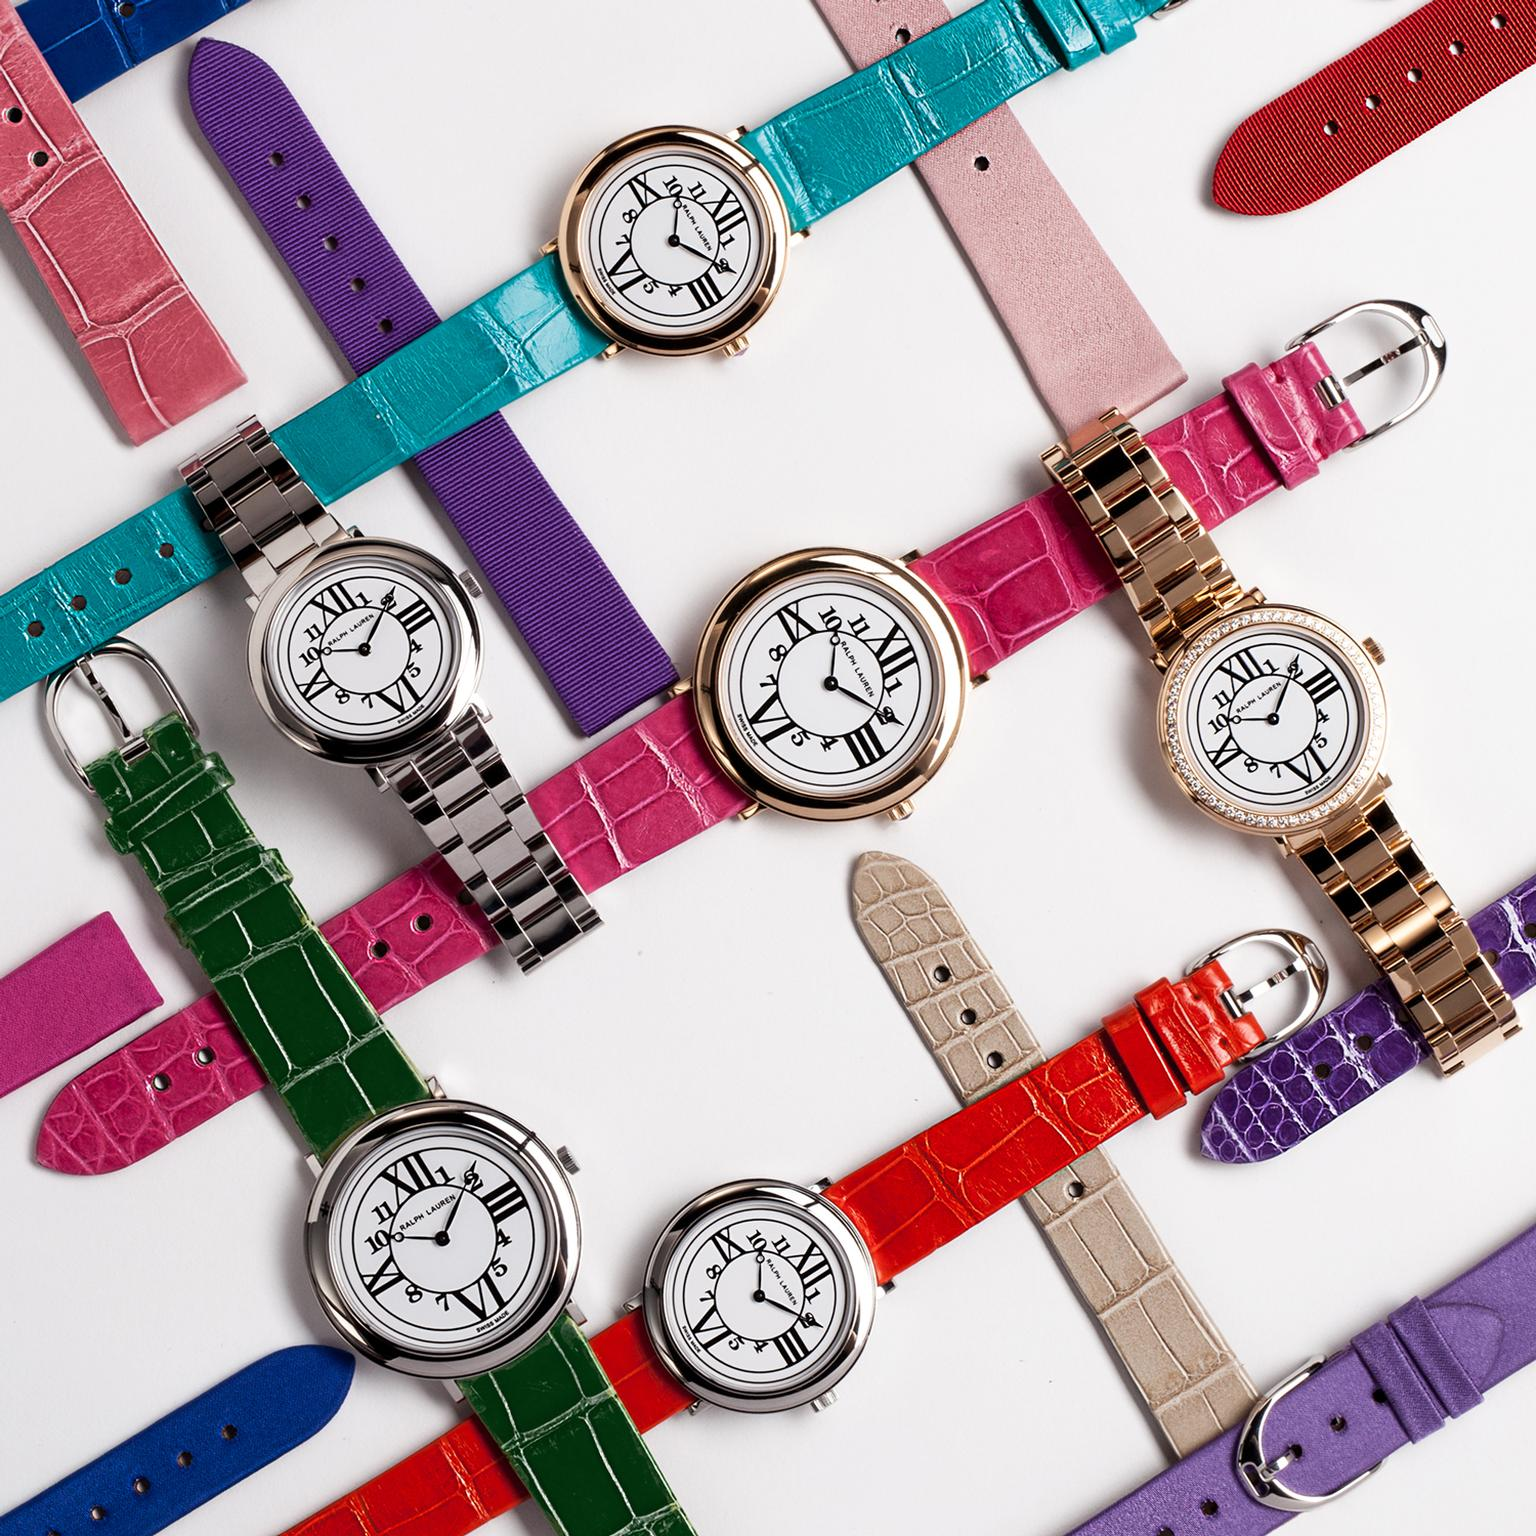 Ralph Lauren RL888 watches with multi-coloured straps